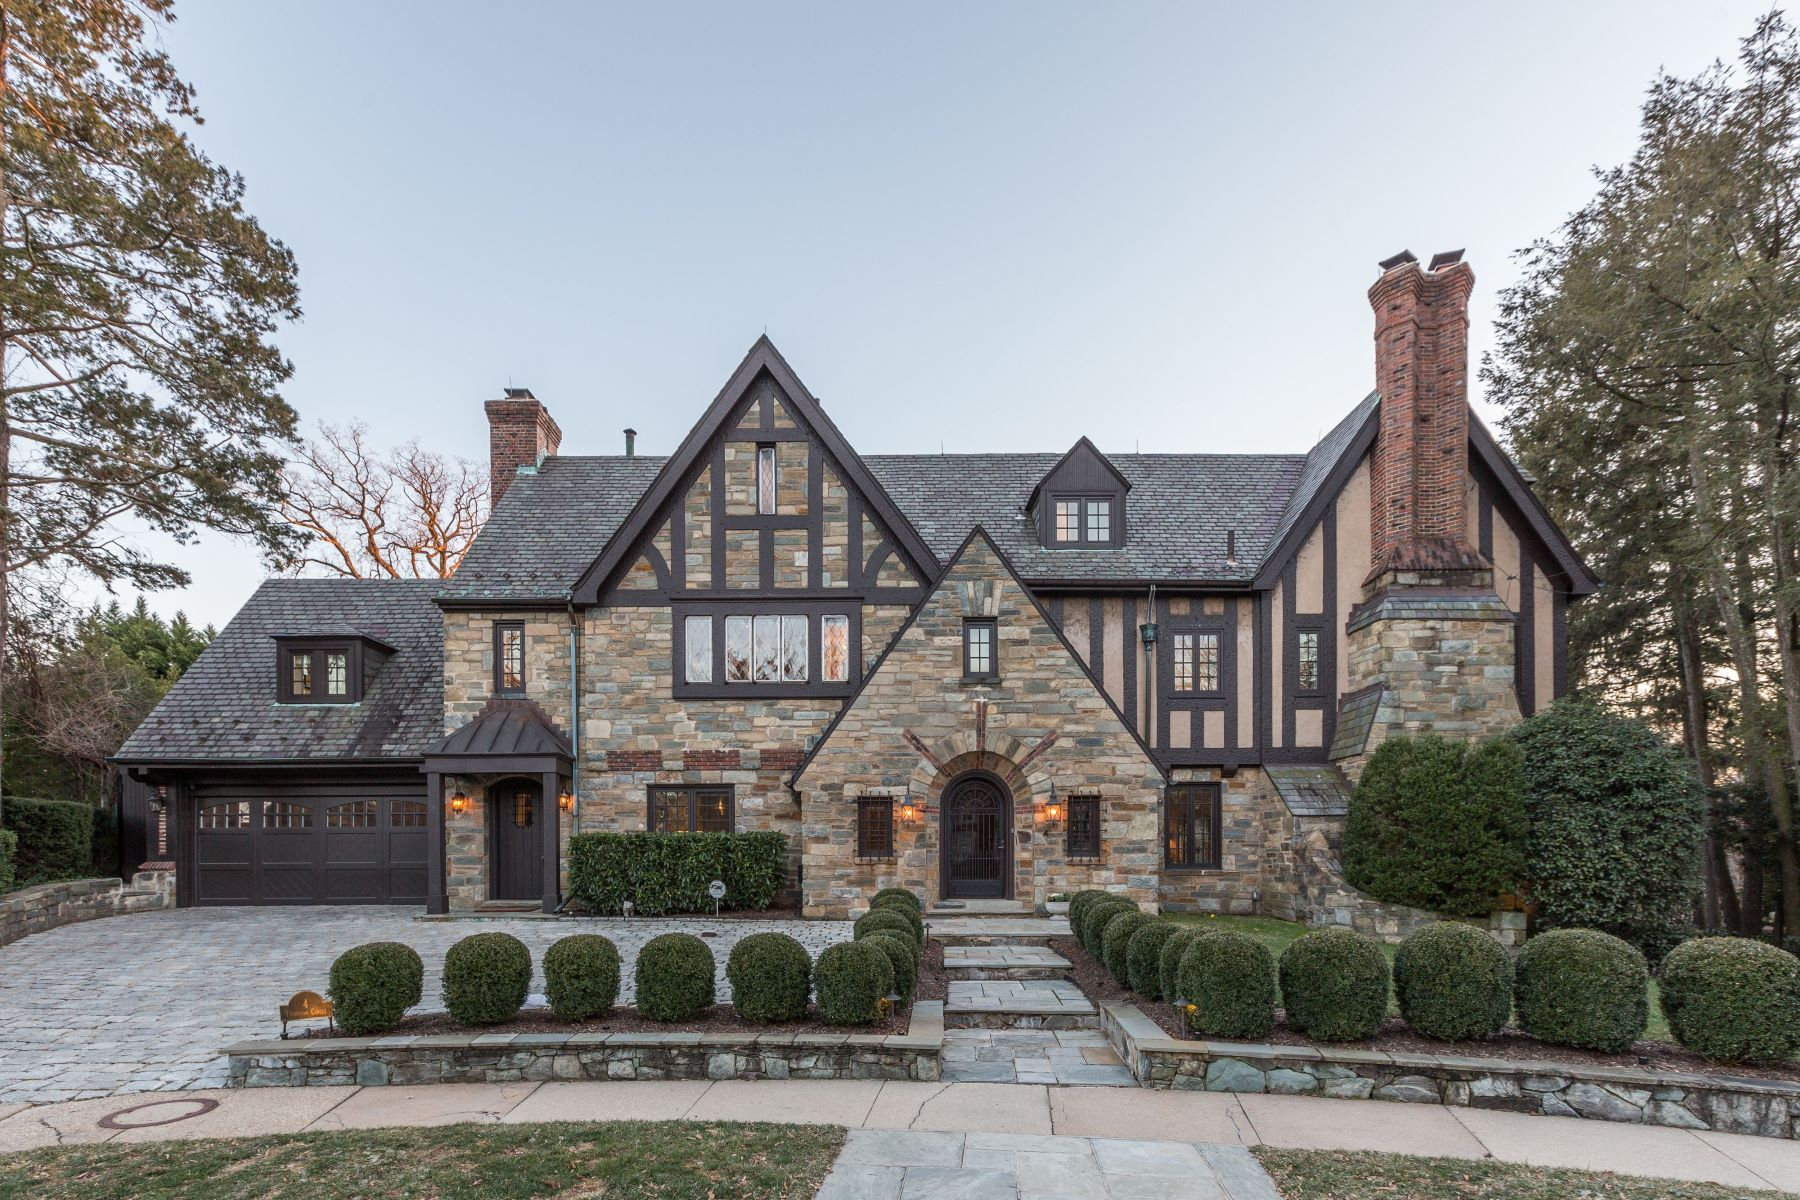 Property for Sale at 4 Thompson Cir NW Washington, District Of Columbia 20008 United States